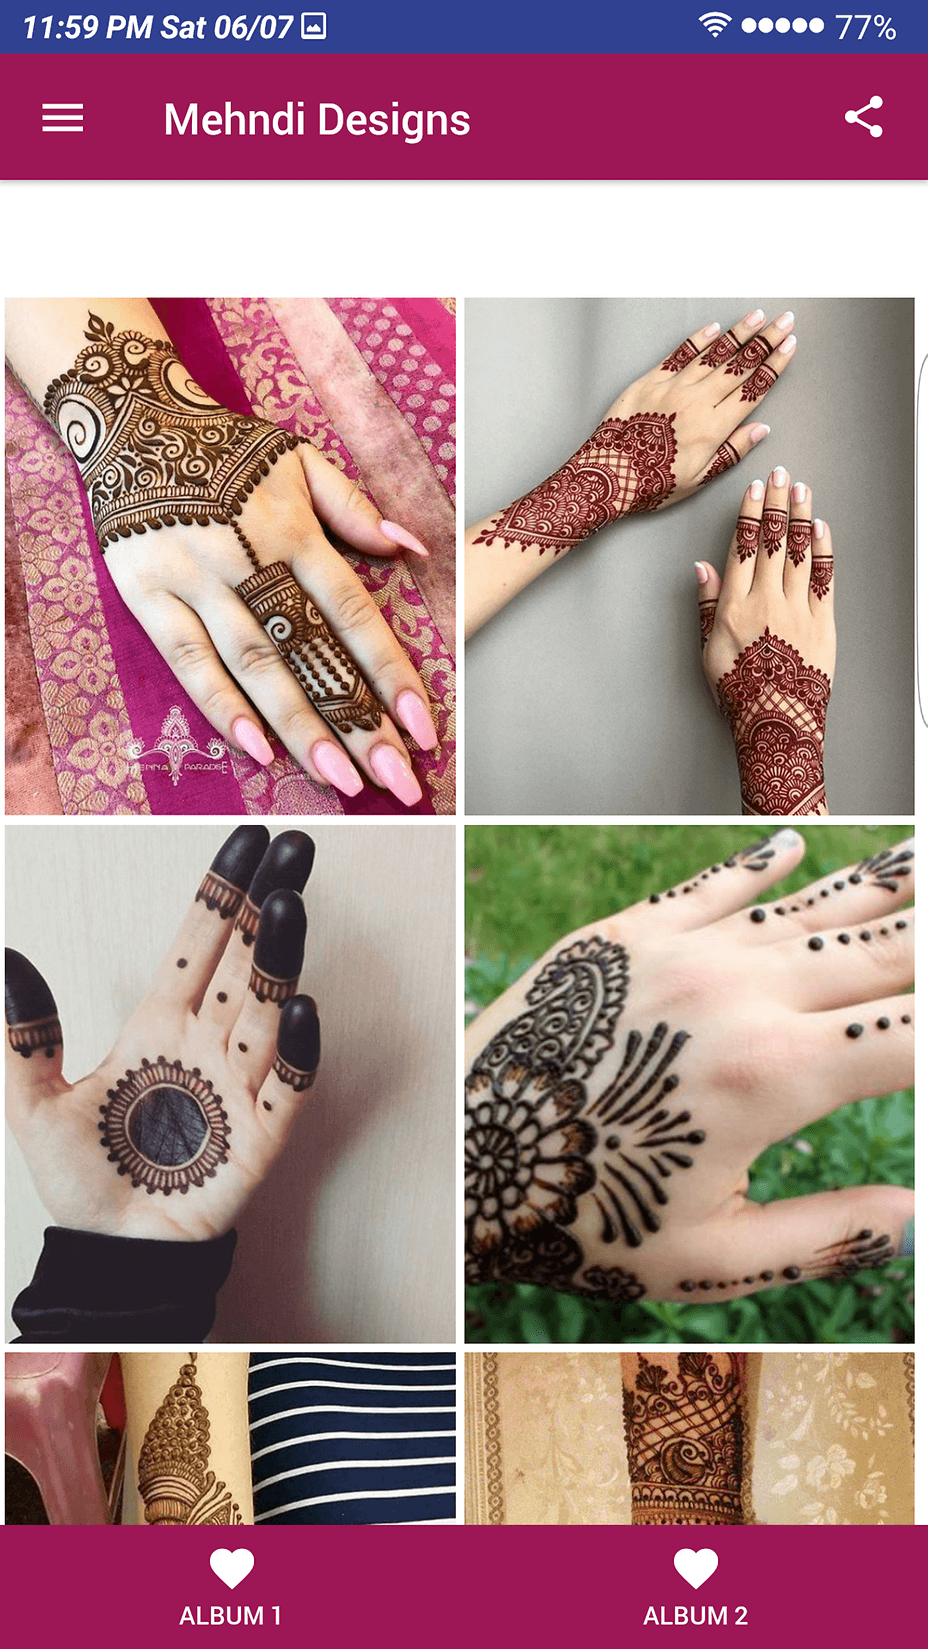 New Mehndi Designs Latest 2019 App Simple And Easy To Use